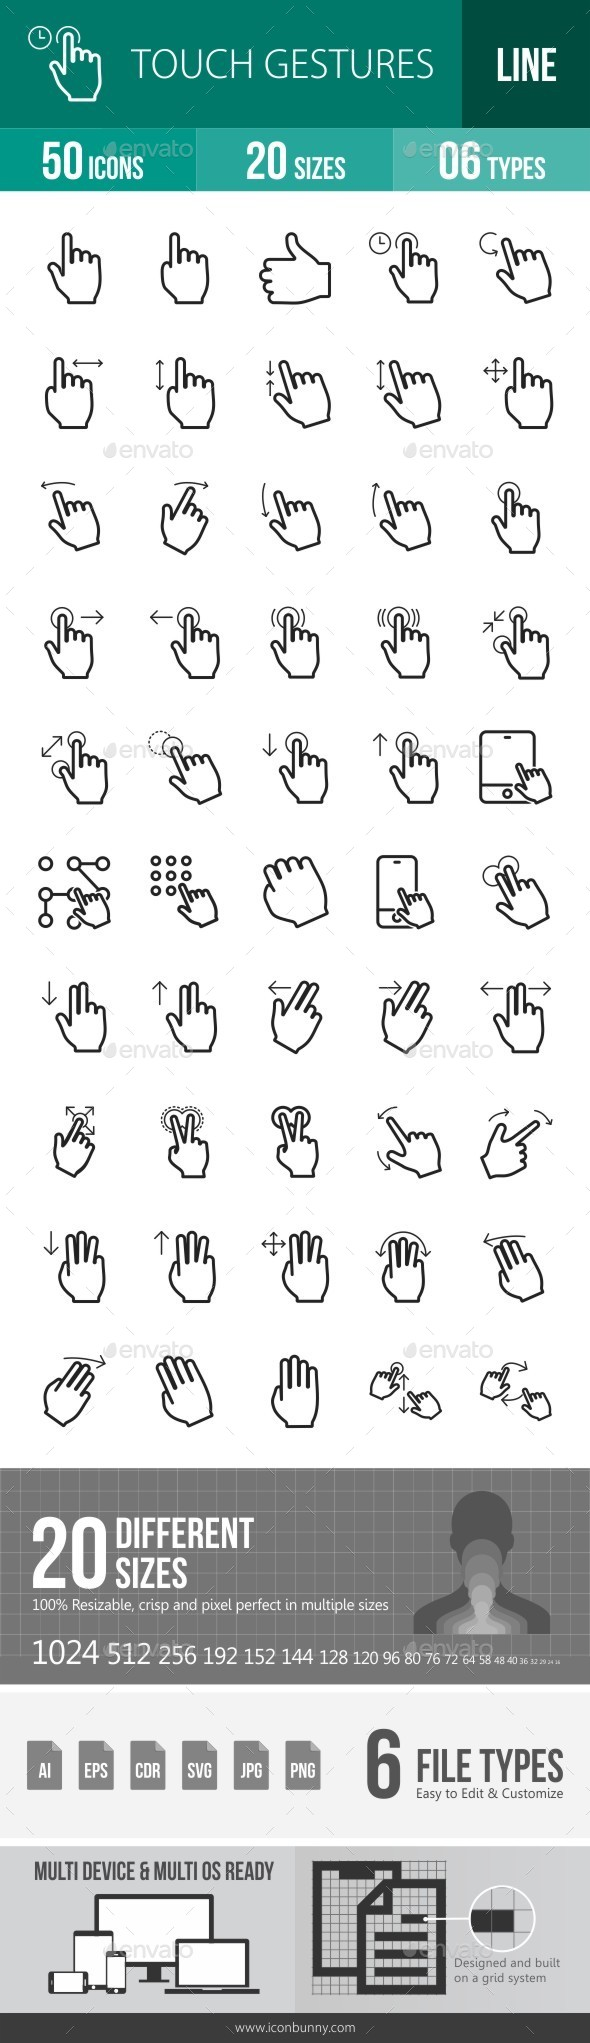 Touch Gestures Line Icons - Icons